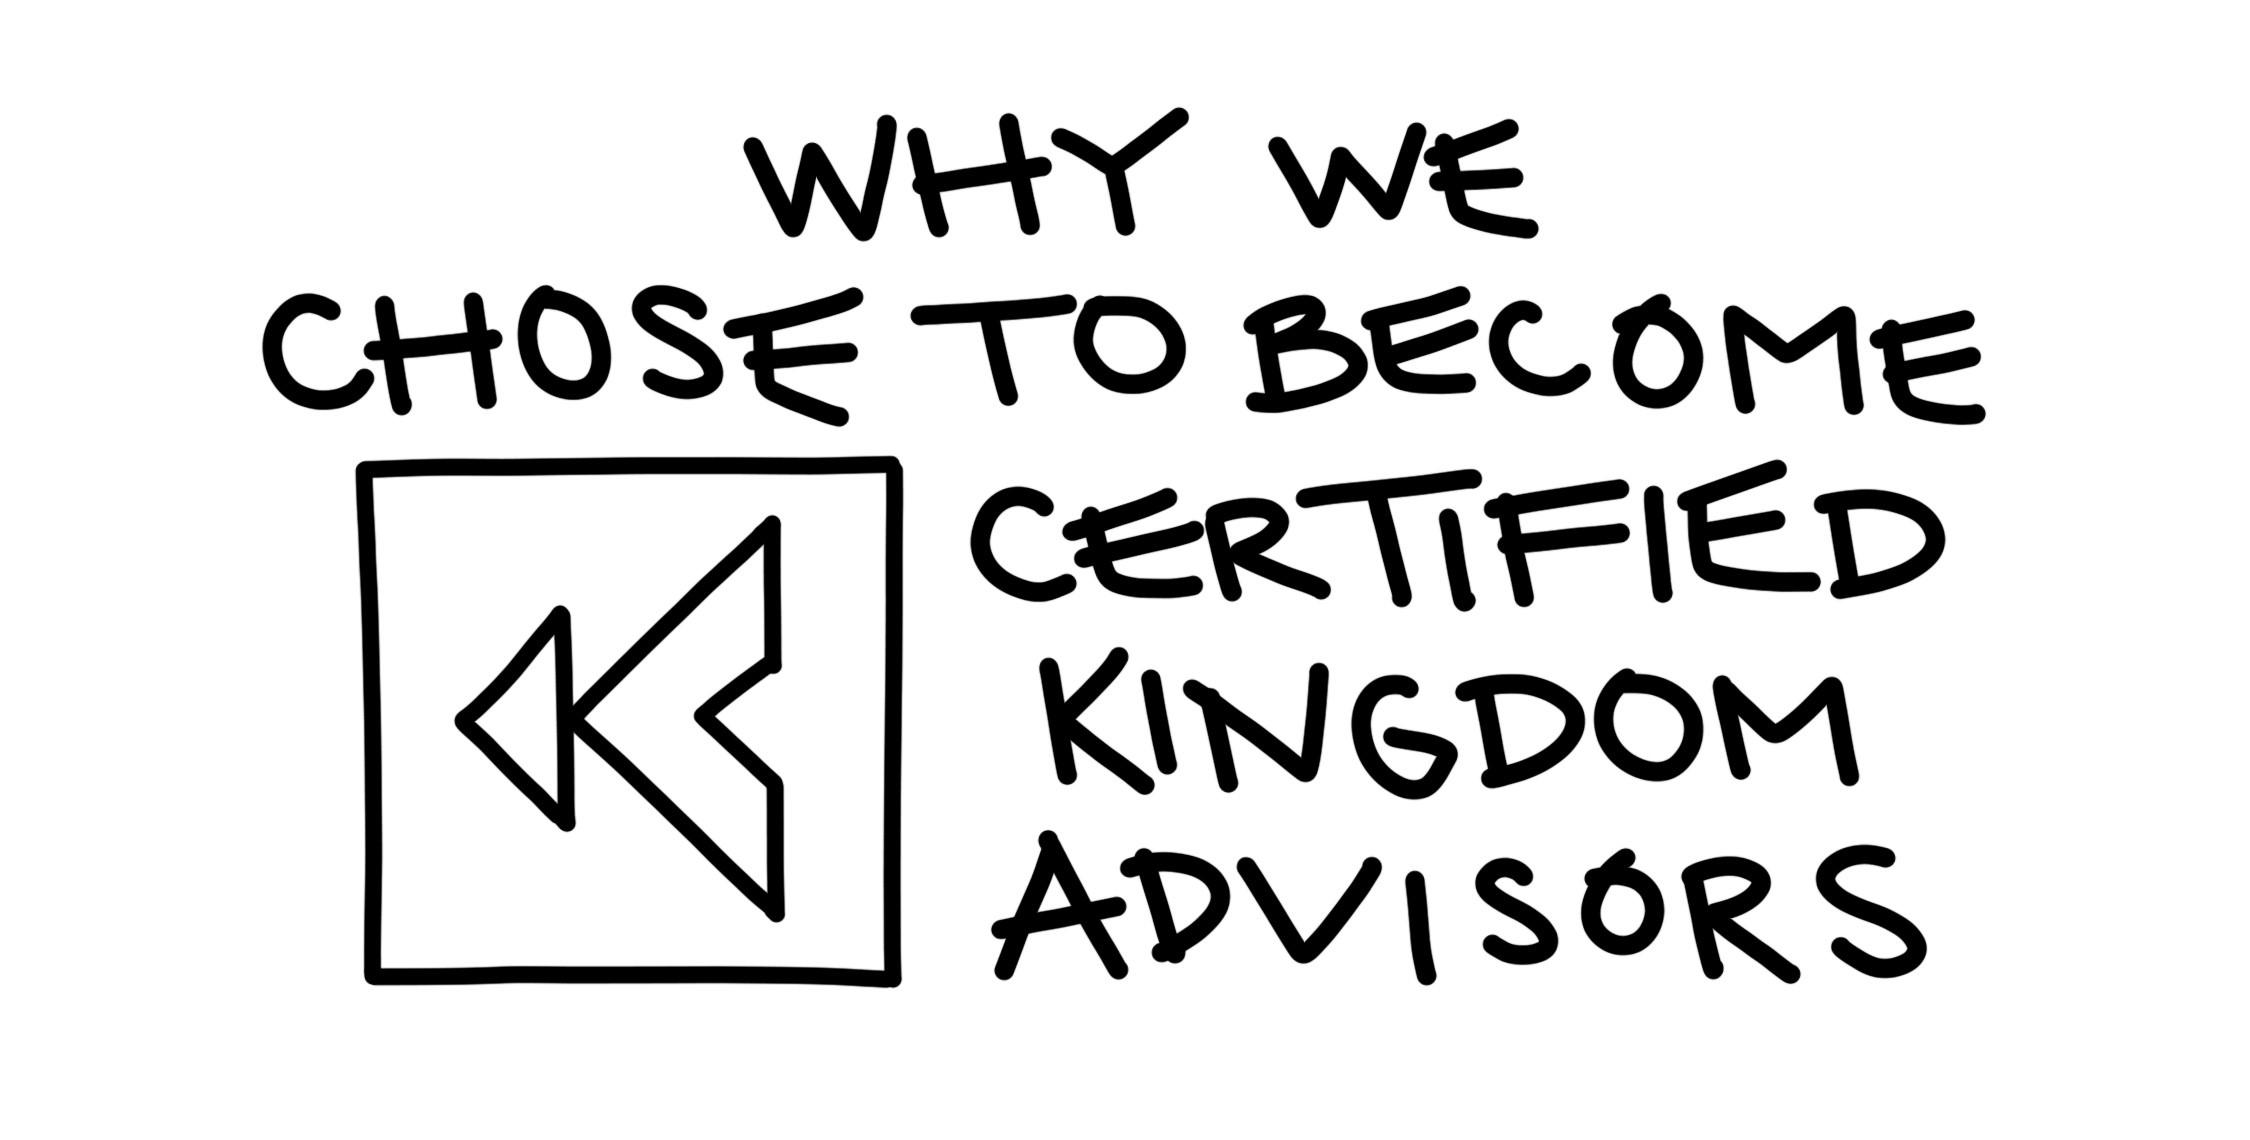 Why We Chose to Become Certified Kingdom Advisors